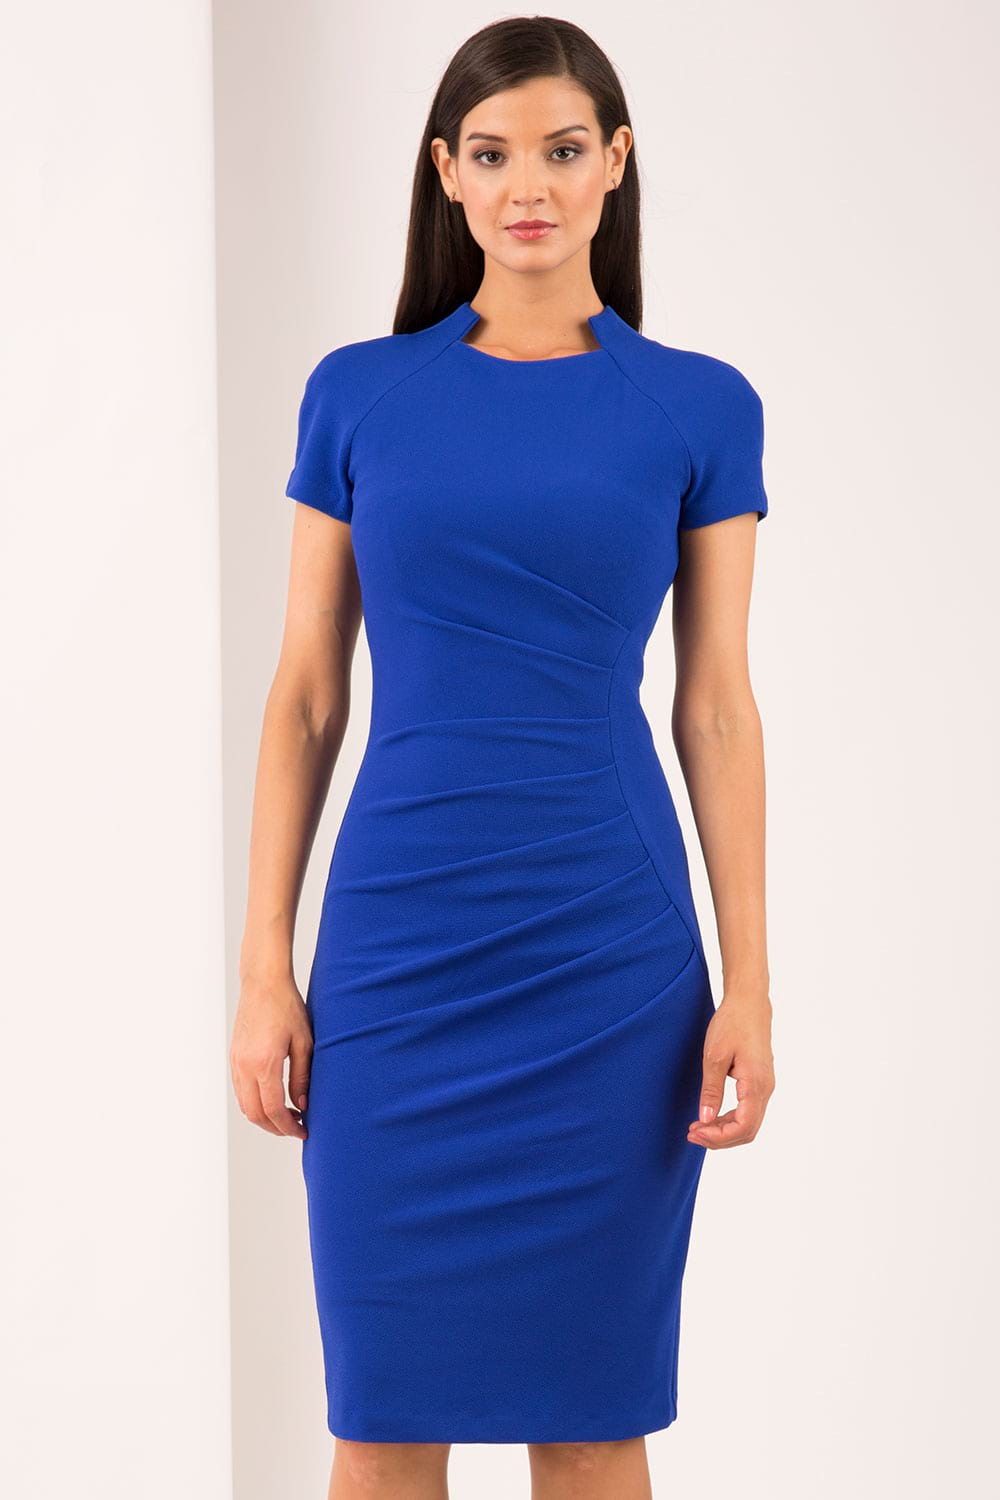 Hybrid Fashion 1285 Jourdan High Neck Dress